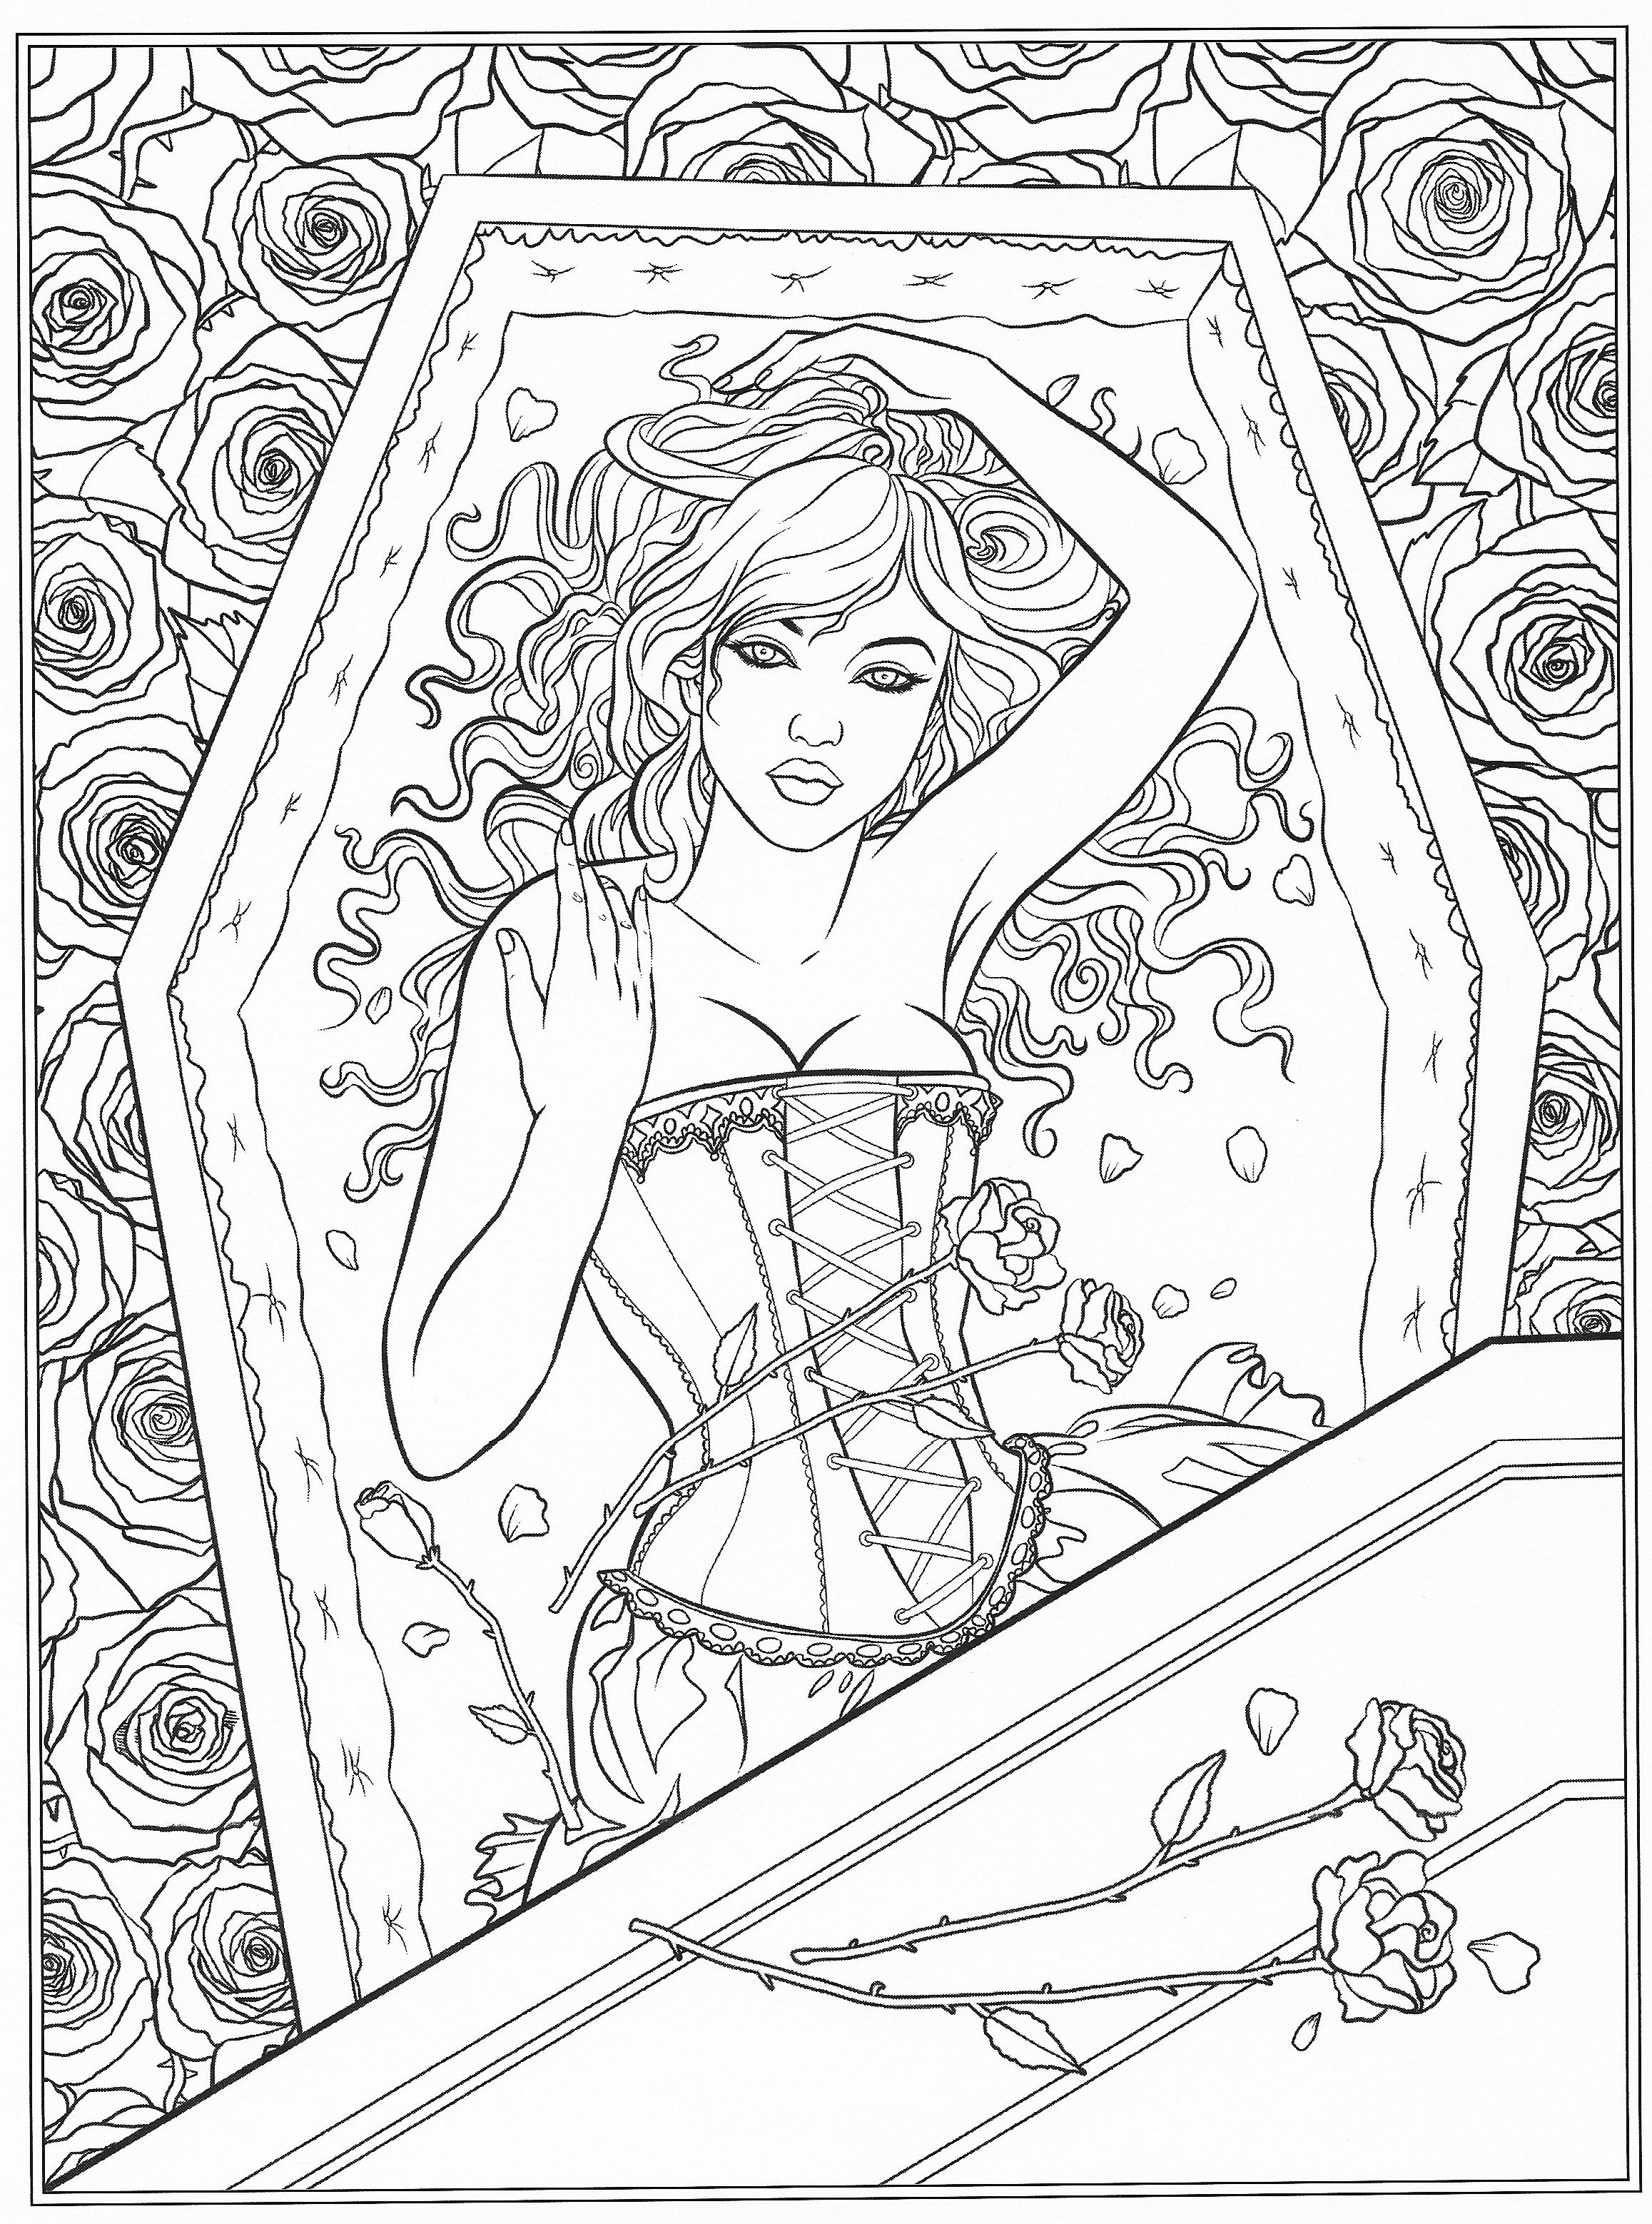 printable gothic fairy coloring pages halloween gothic coloring page to color with color therapy fairy printable coloring pages gothic